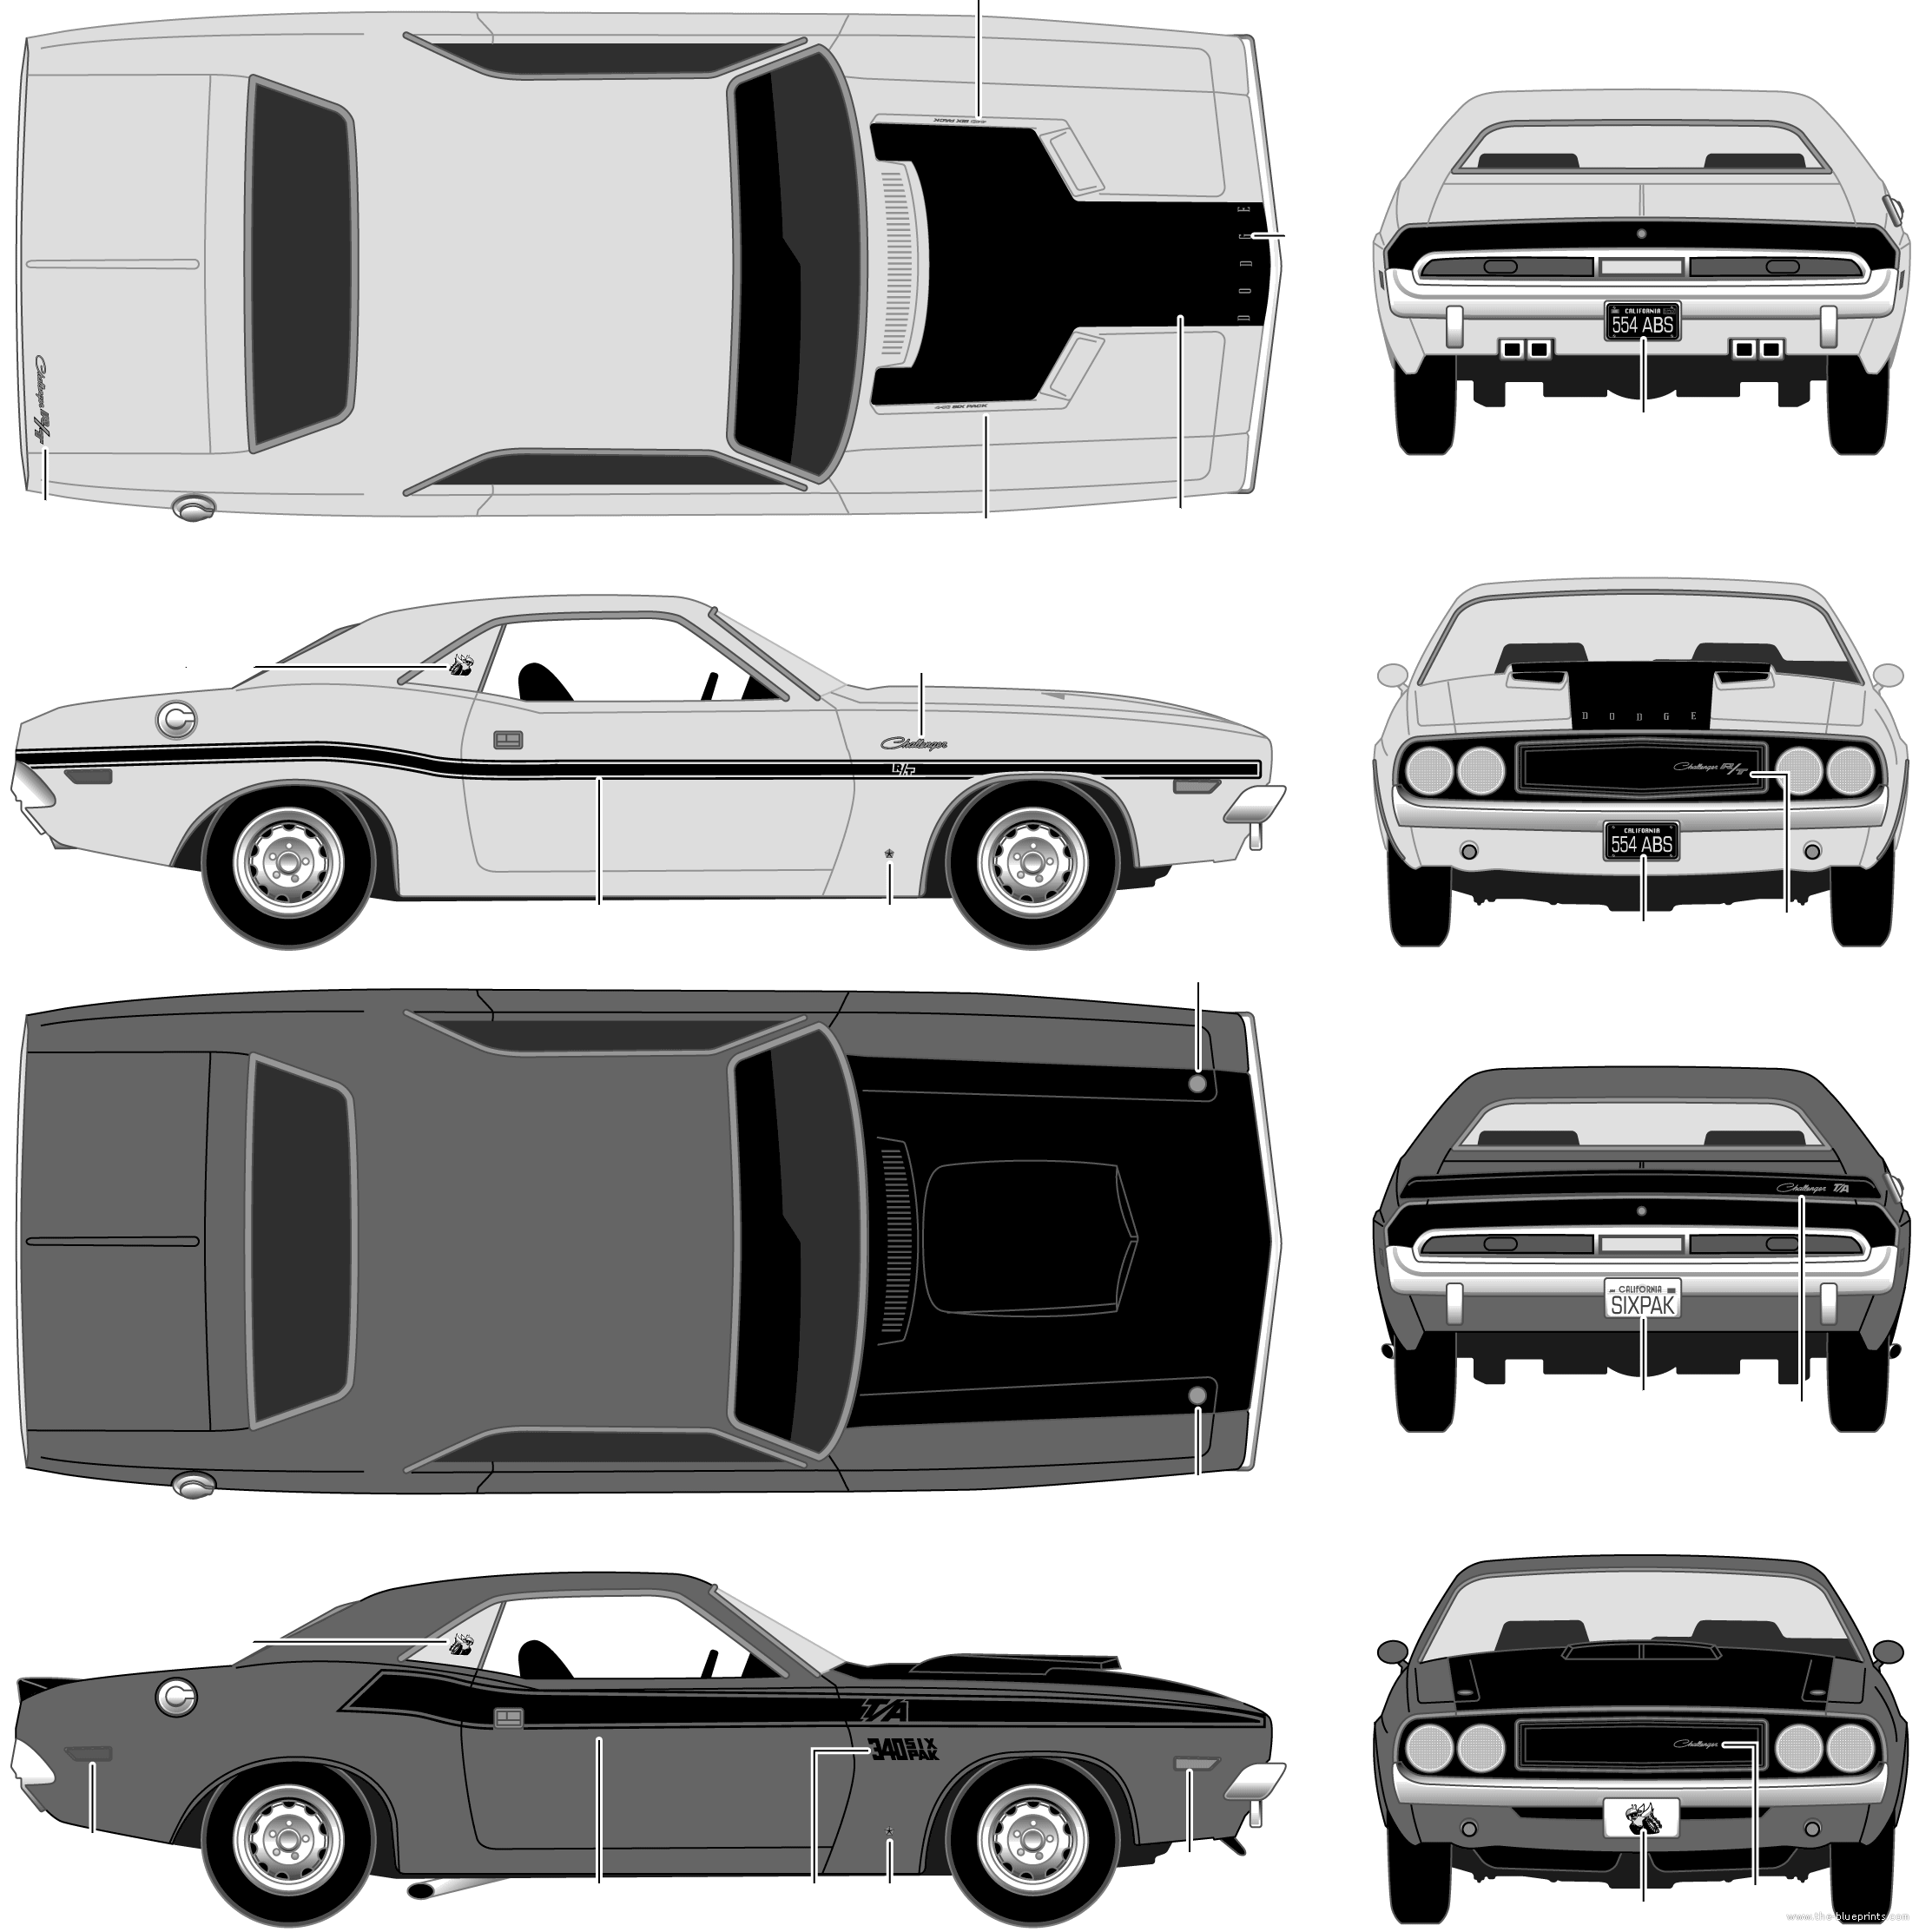 Dodge challenger 1970 blueprints cars pinterest dodge dodge challenger 1970 blueprints malvernweather Image collections